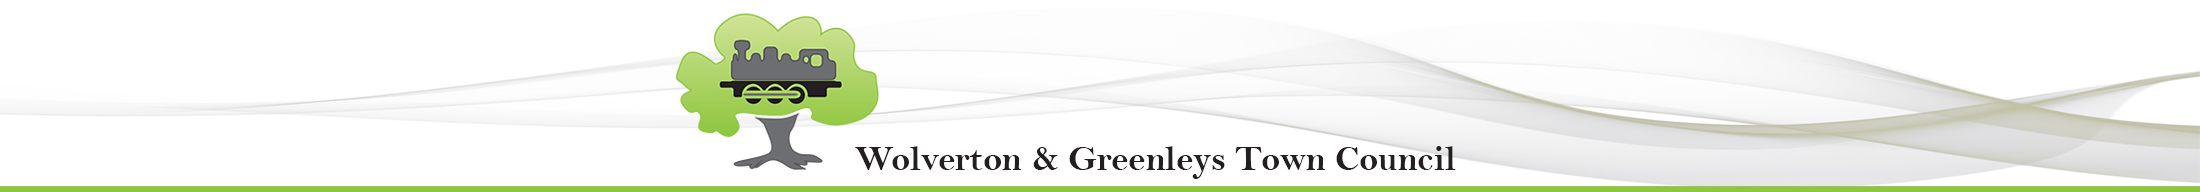 Header Image for Wolverton and Greenleys Town Council